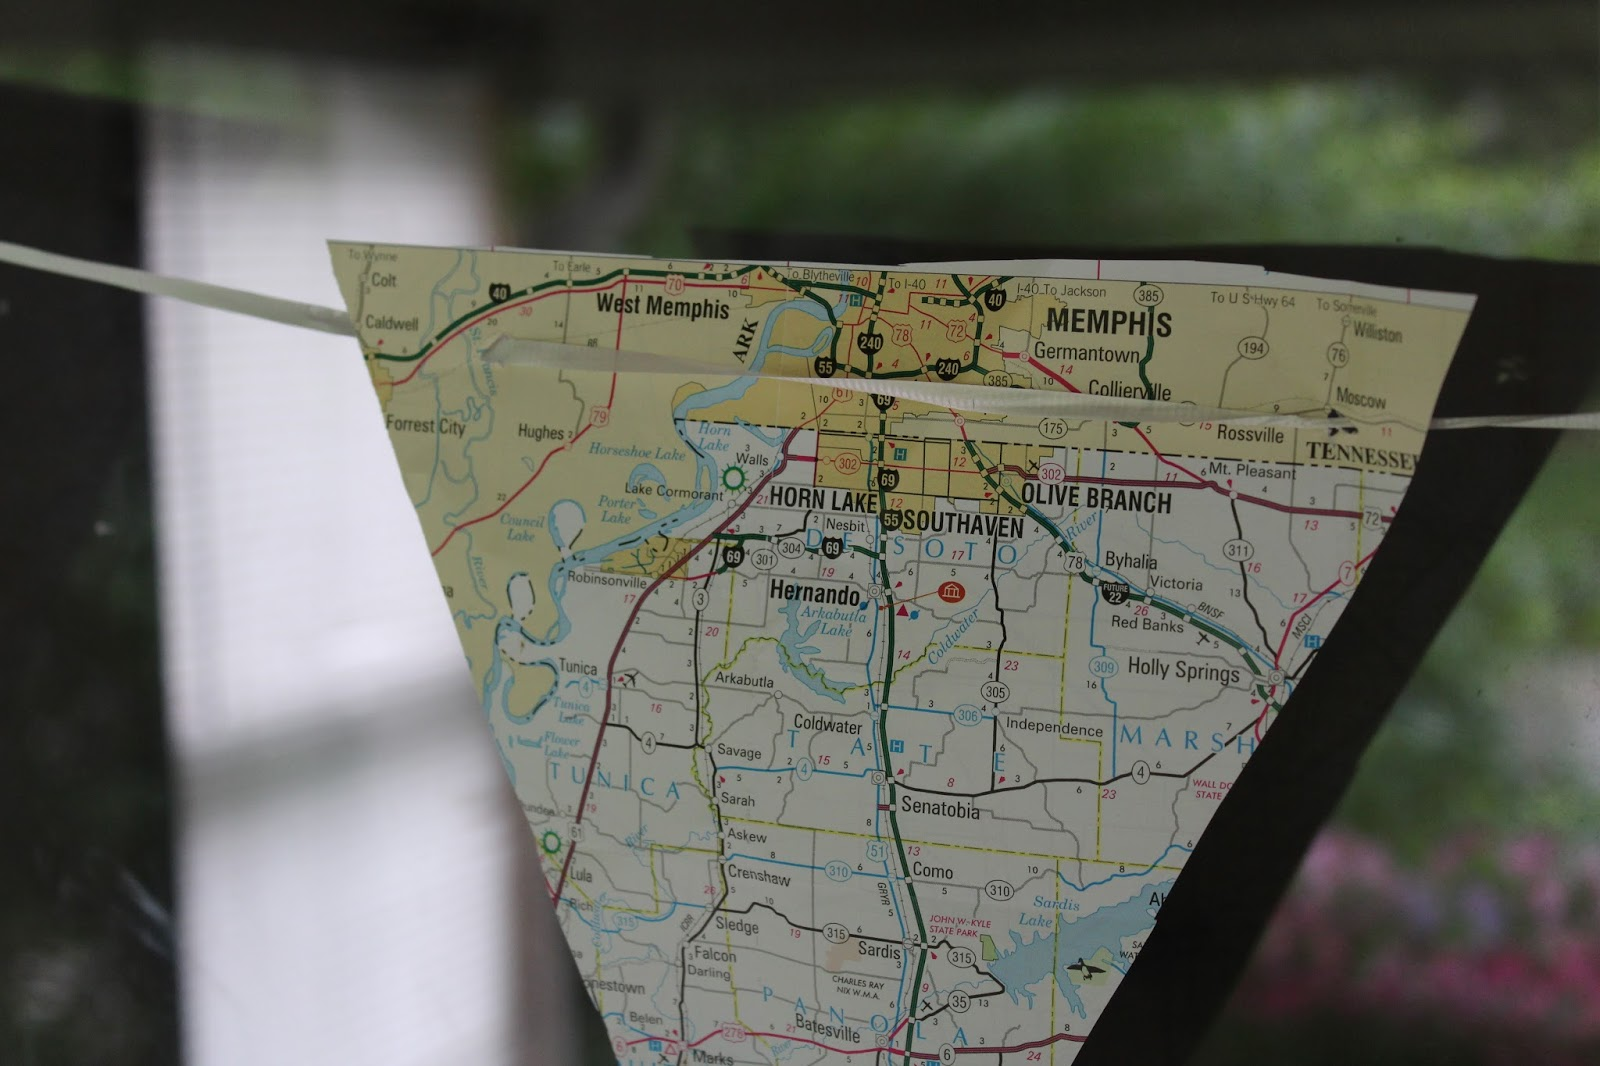 Jumping With My Fingers Crossed DIY Map Crafts And Pinterest - Memphison us map